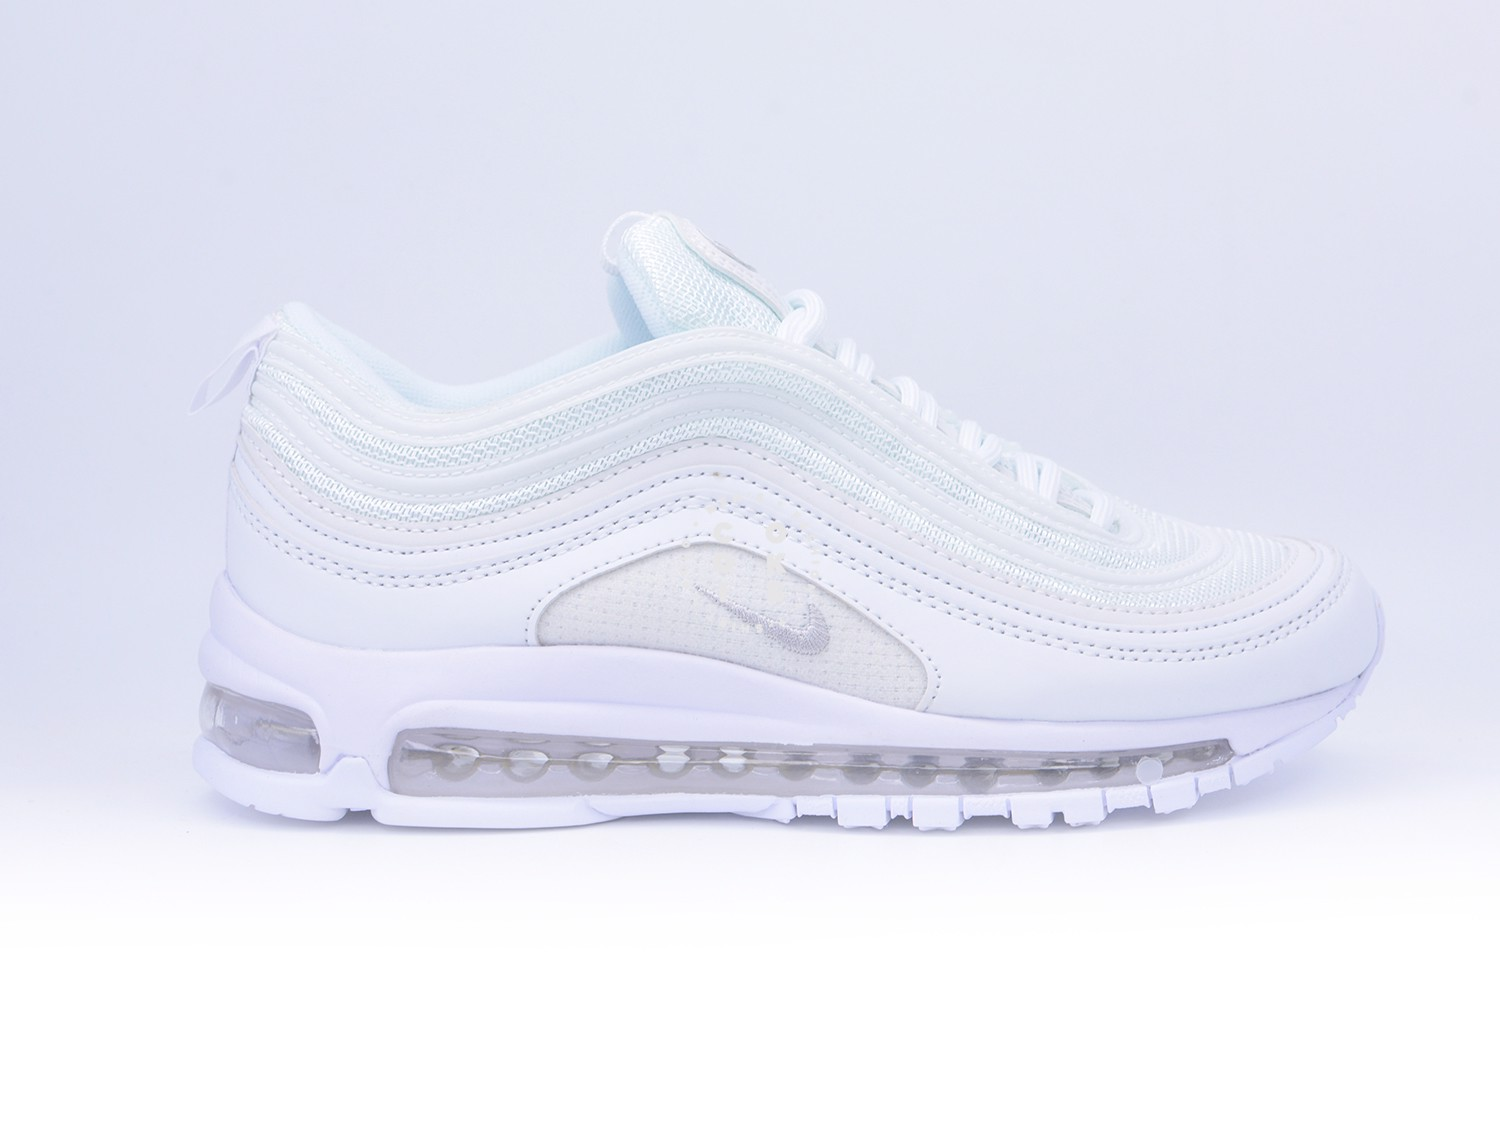 Giày Nike Air Max 97 White Grey 921826-101